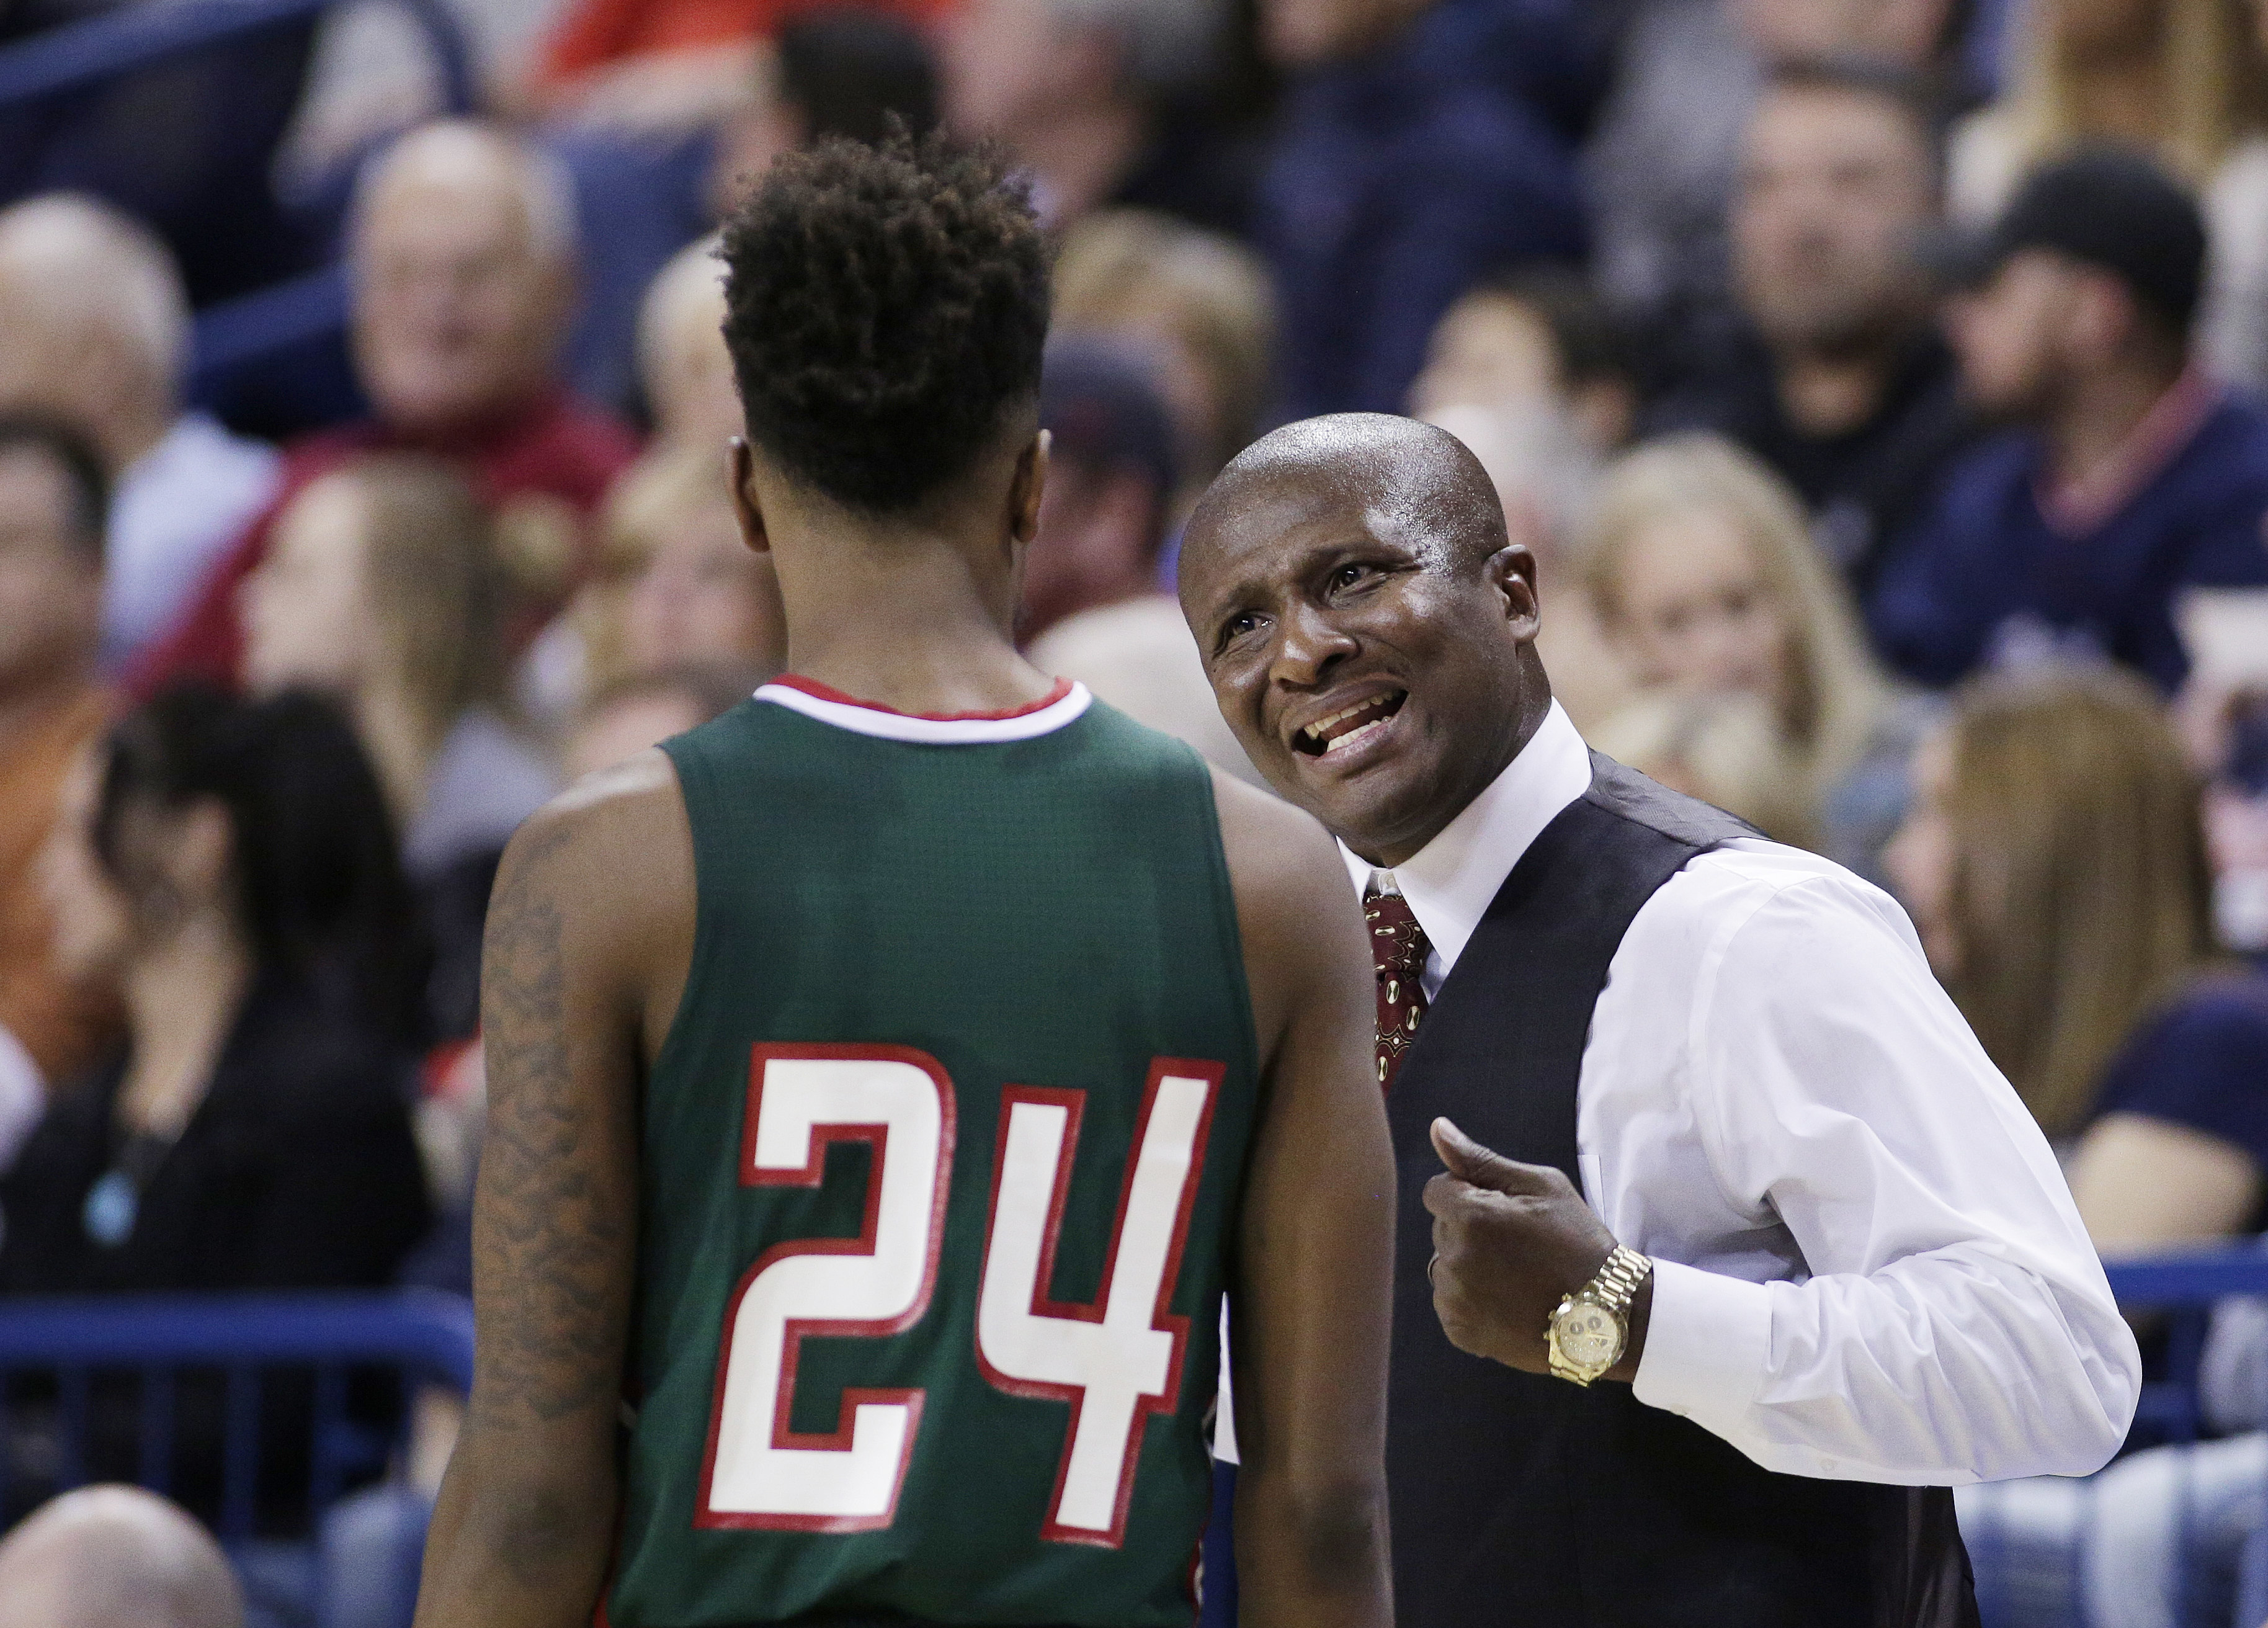 Mississippi Valley State coach Andre Payne, right, speaks with guard Isaac Williams (24) during the team's NCAA college basketball game against Gonzaga in Spokane, Wash. MVSU and Texas Southern are among a handful of lower-level Division I teams that lead a nomadic existence during non-conference play, traveling to play road games with guaranteed payouts.